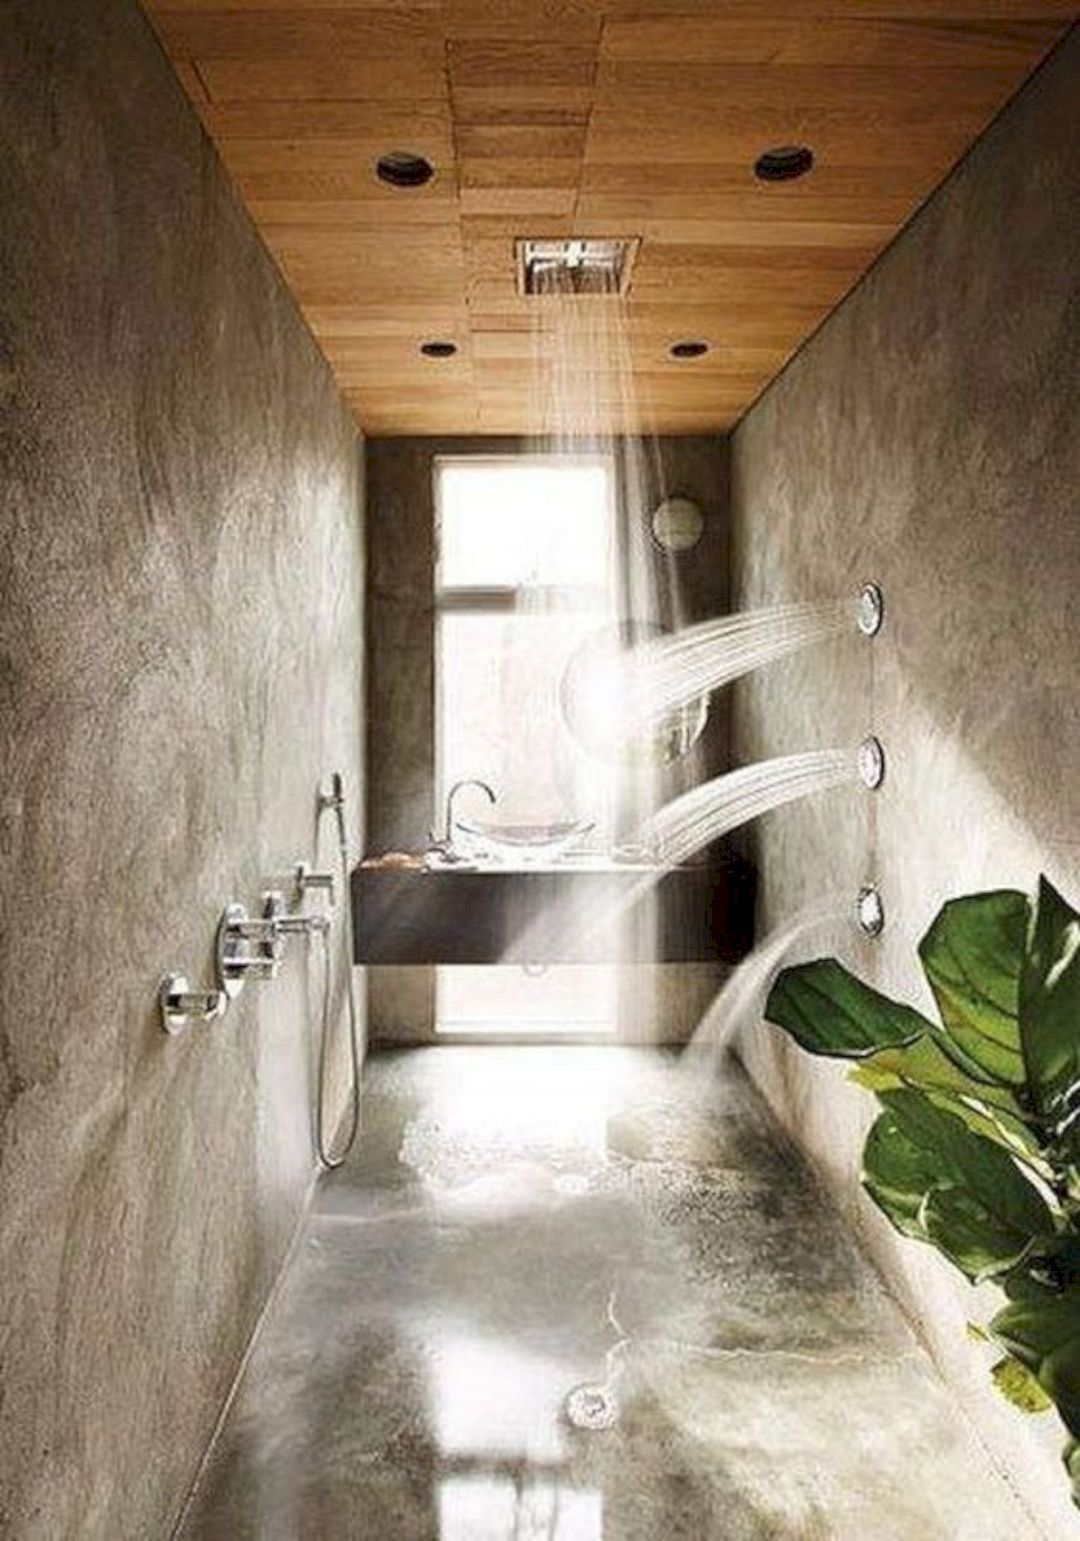 15 Amazing Design Ideas For a Unique Bathroom | White bathroom ... on master bathroom ideas, unique small bathroom storage, unique apartment ideas, unique vessel sink ideas, unique exterior house designs, unique bathroom themes, unique kitchen remodel, unique bathroom accessory sets, unique antique bathroom vanities, unique roofing ideas, unique kitchen ideas, unique showers, unique brick house designs, different bathroom ideas, unique upholstery ideas, unique bathroom stalls, bathroom makeover ideas, man's bathroom ideas, ocean themed bathroom ideas, unique vanities for bathrooms,